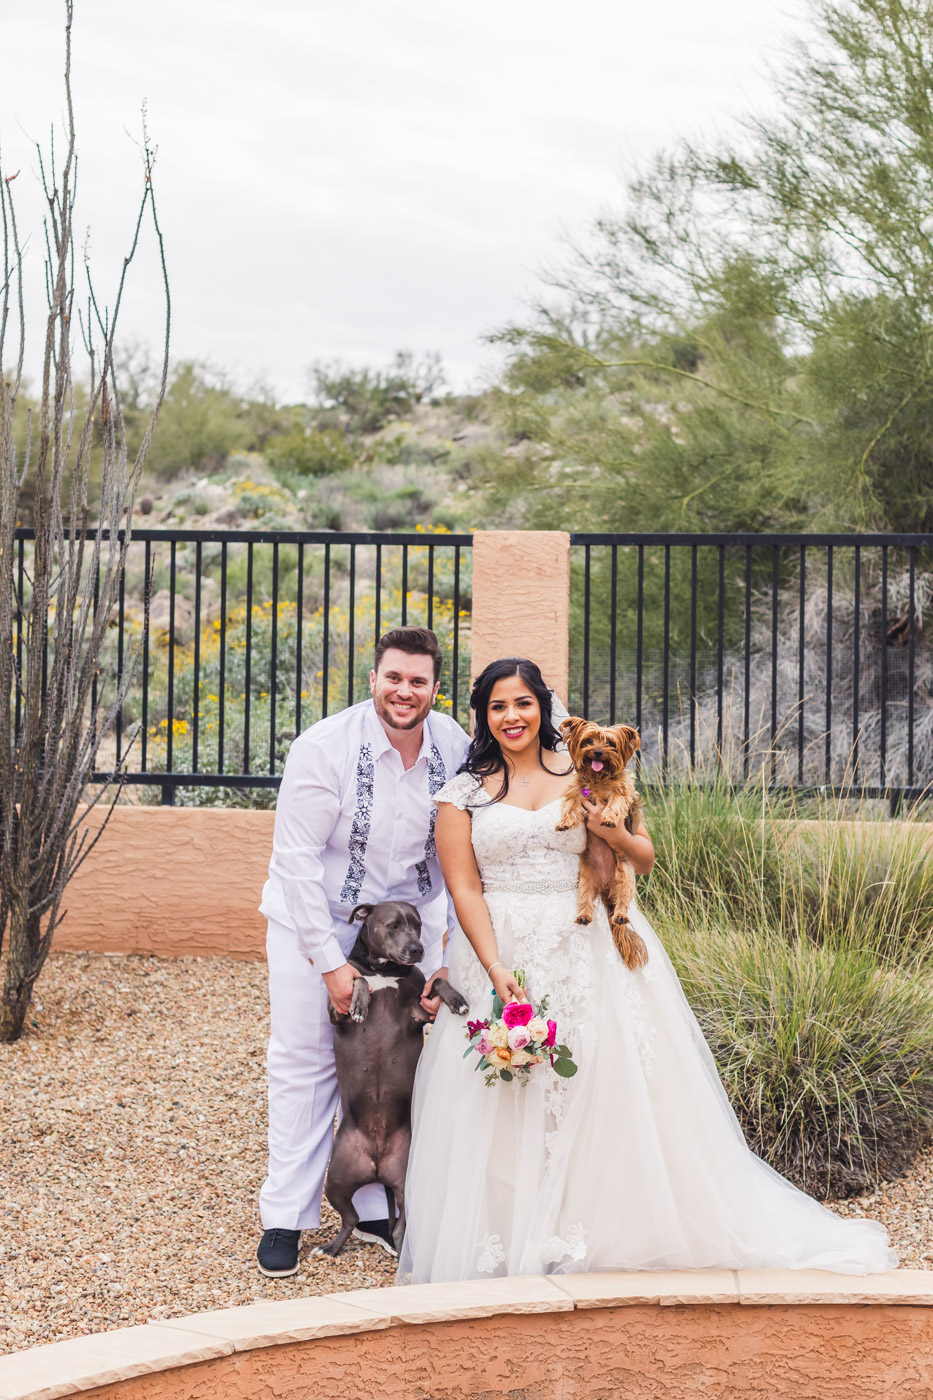 bride-and-groom-wedding-portrait-with-dogs